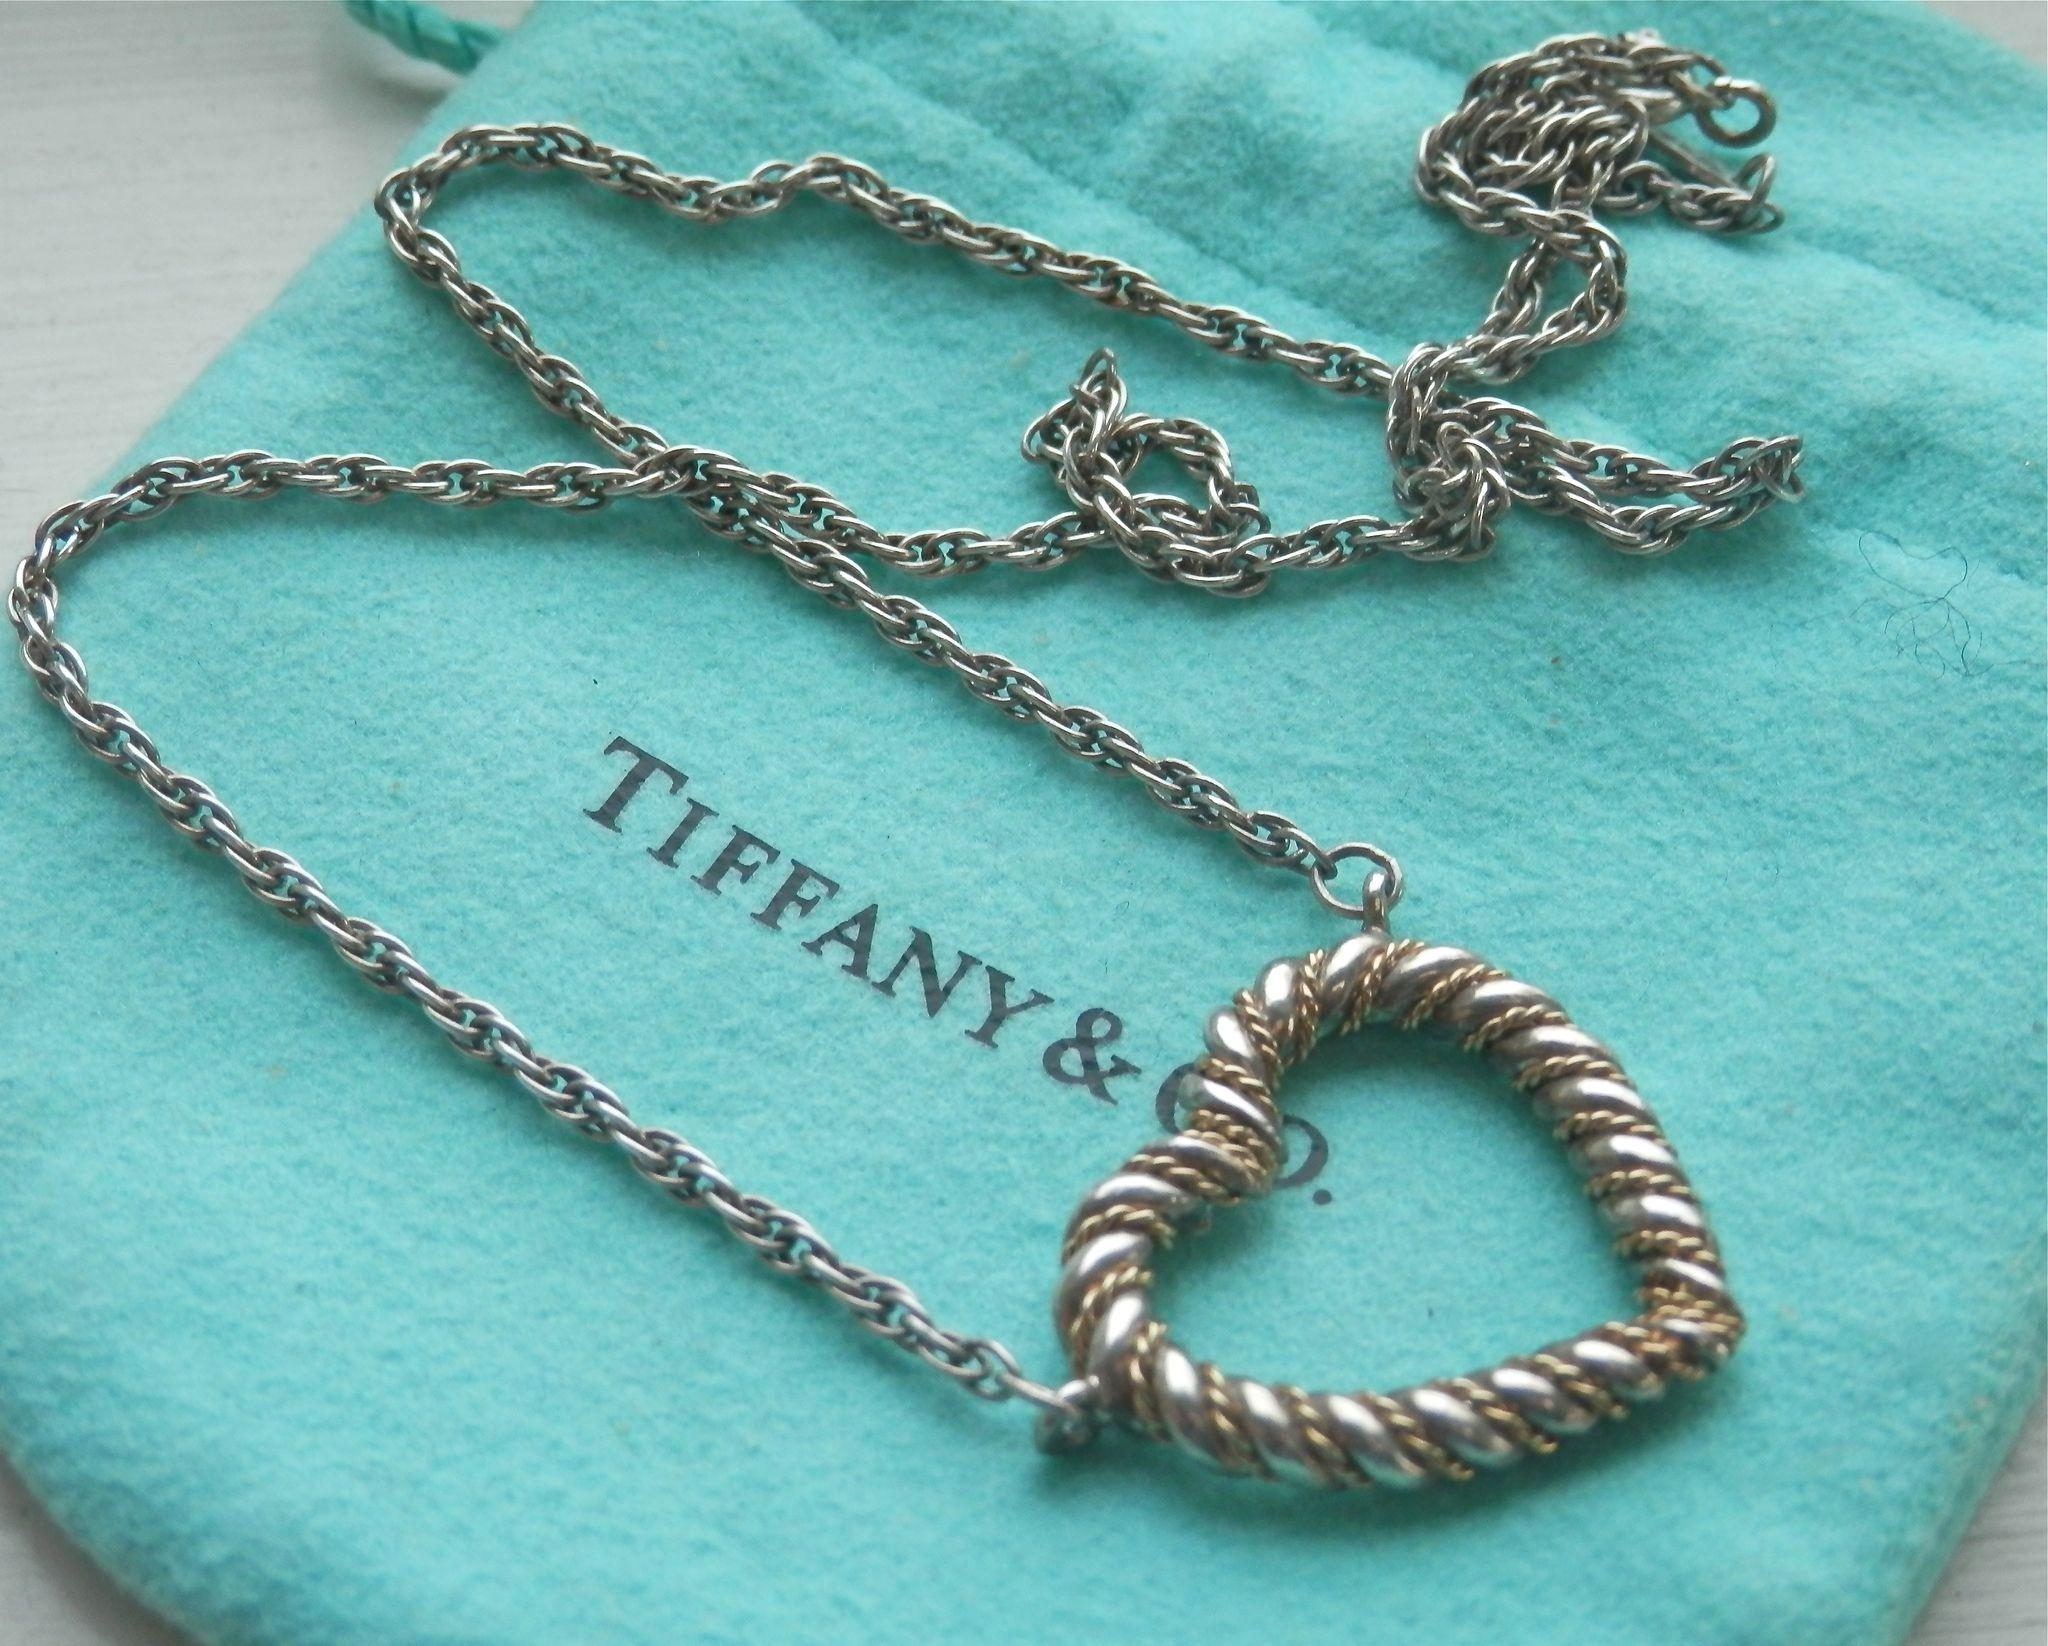 Tiffany & Co Silver 18K Y Gold Heart Twisted Rope Necklace from